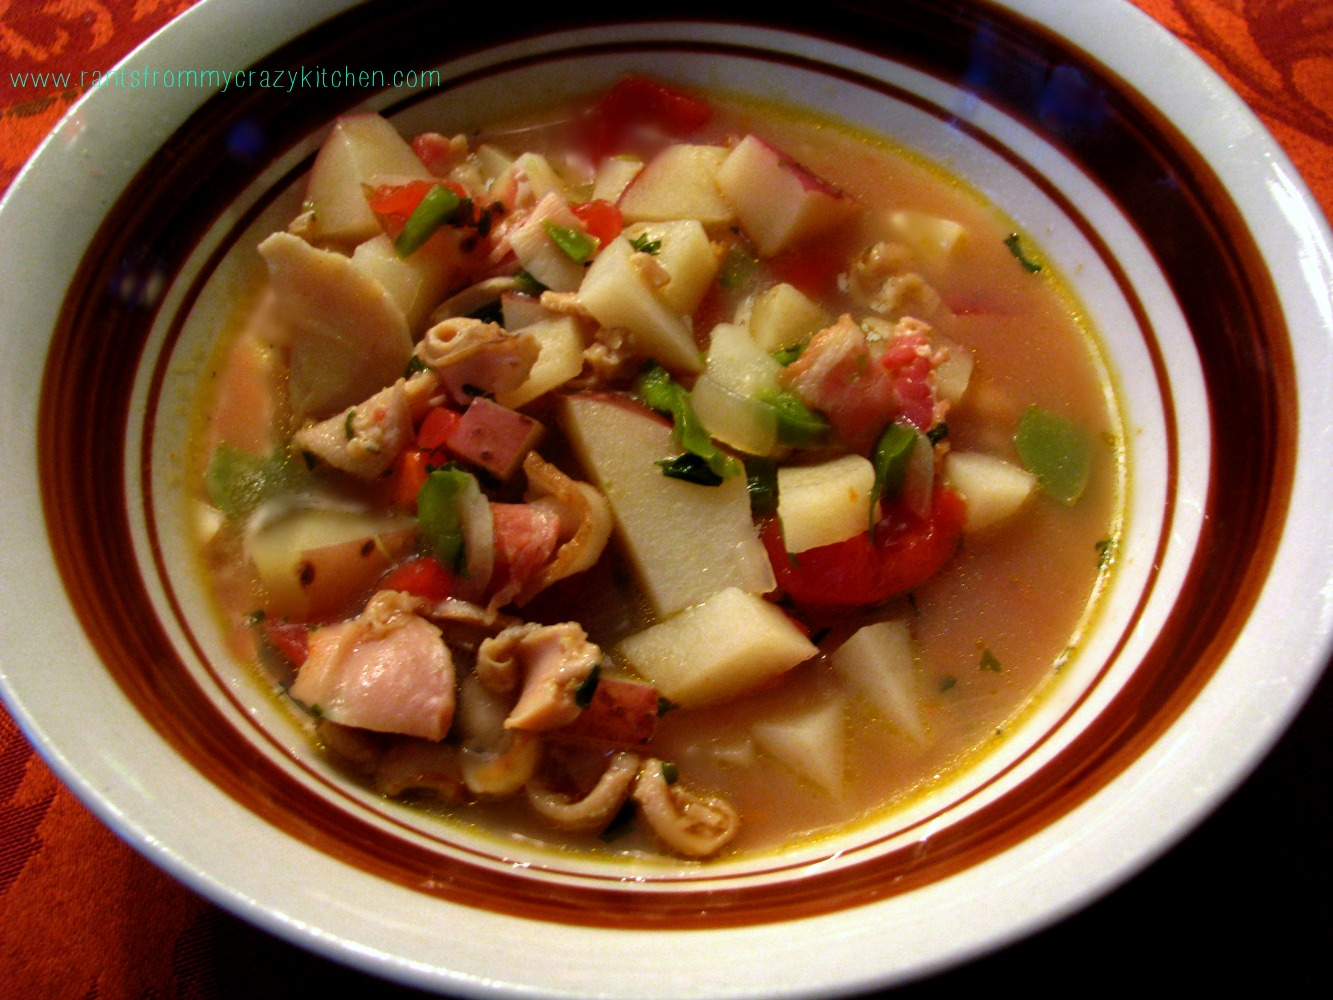 Manhattan Clam Chowder - Rants From My Crazy Kitchen